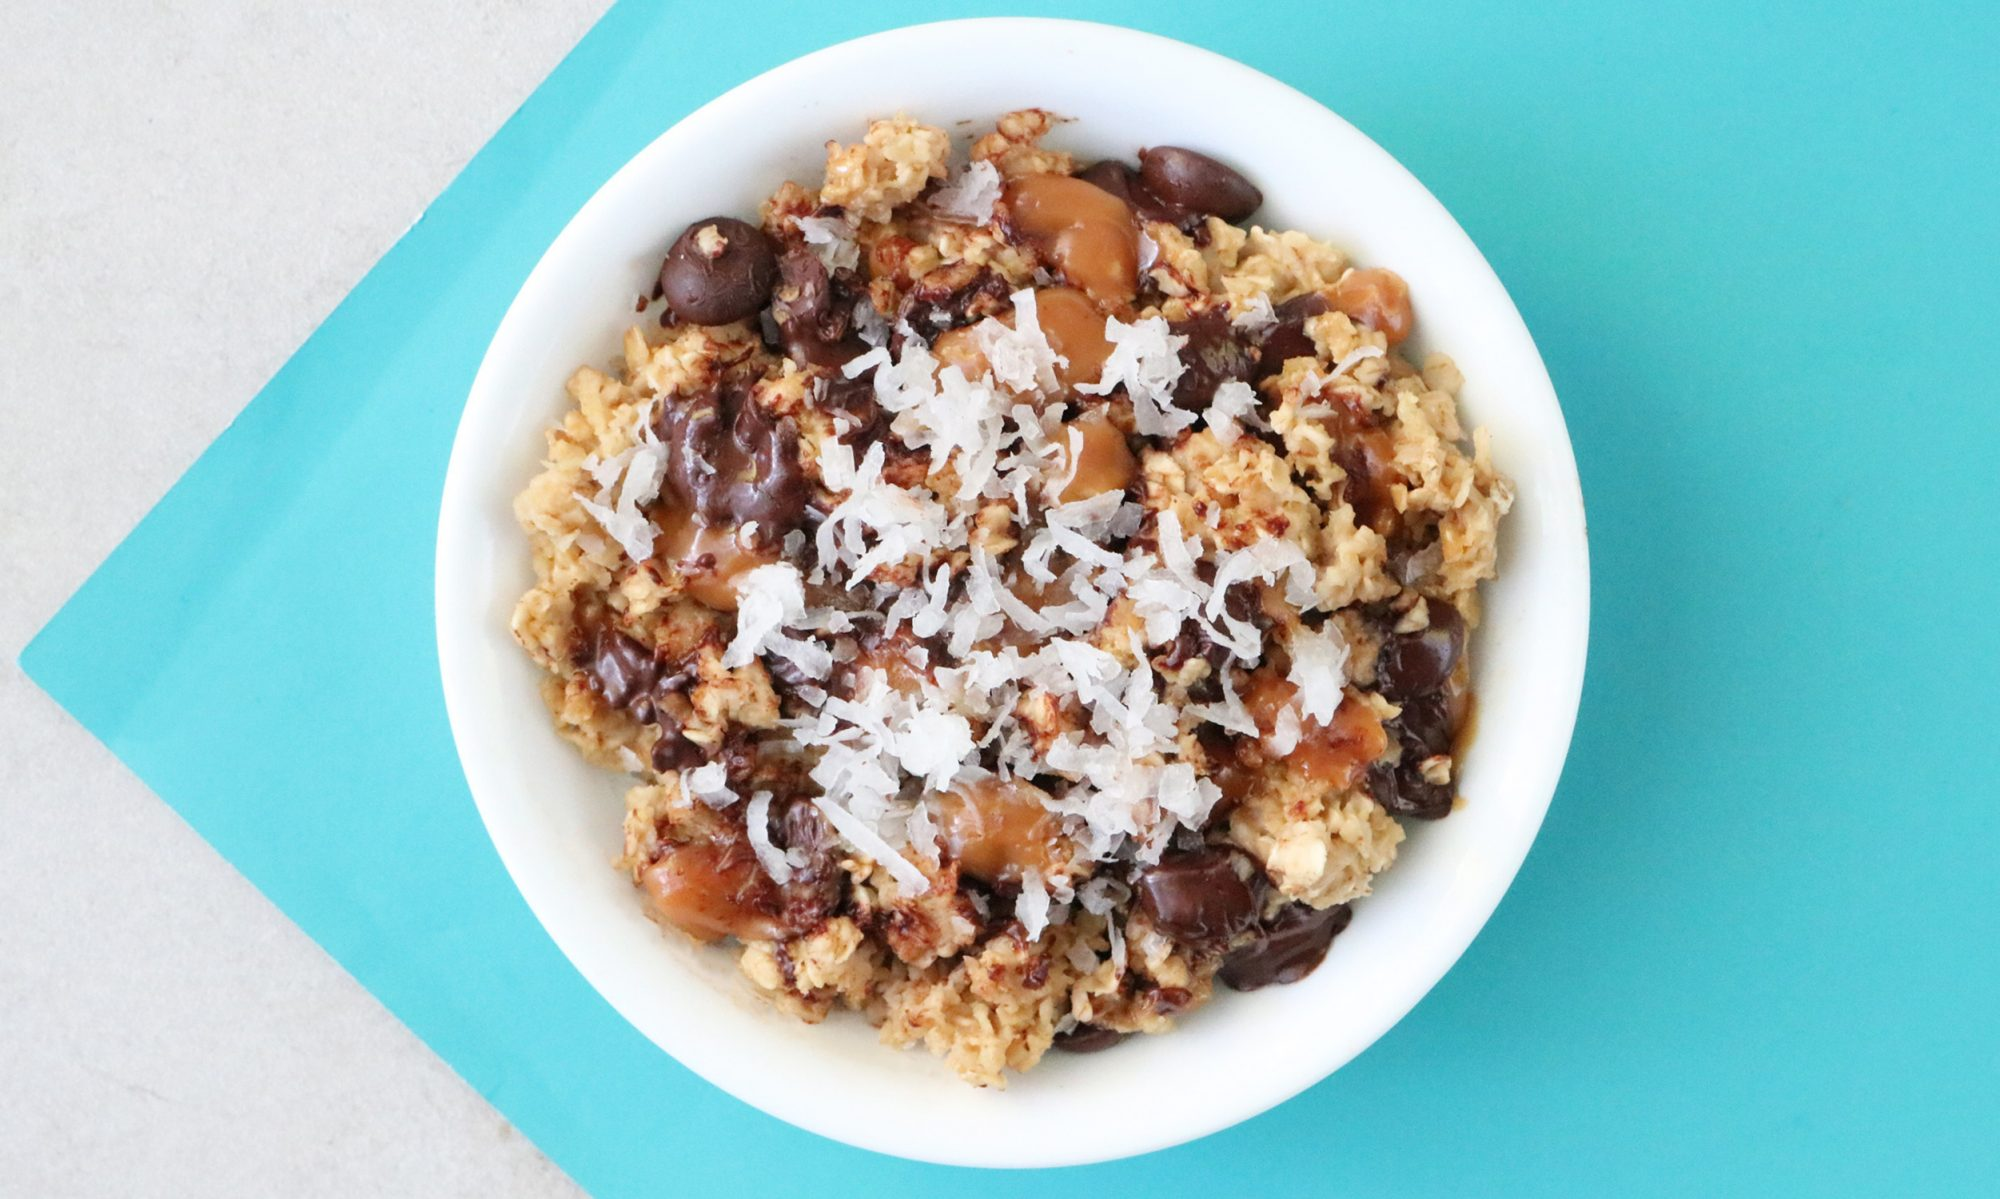 EC: Make Oatmeal Inspired By the Best Girl Scout Cookie